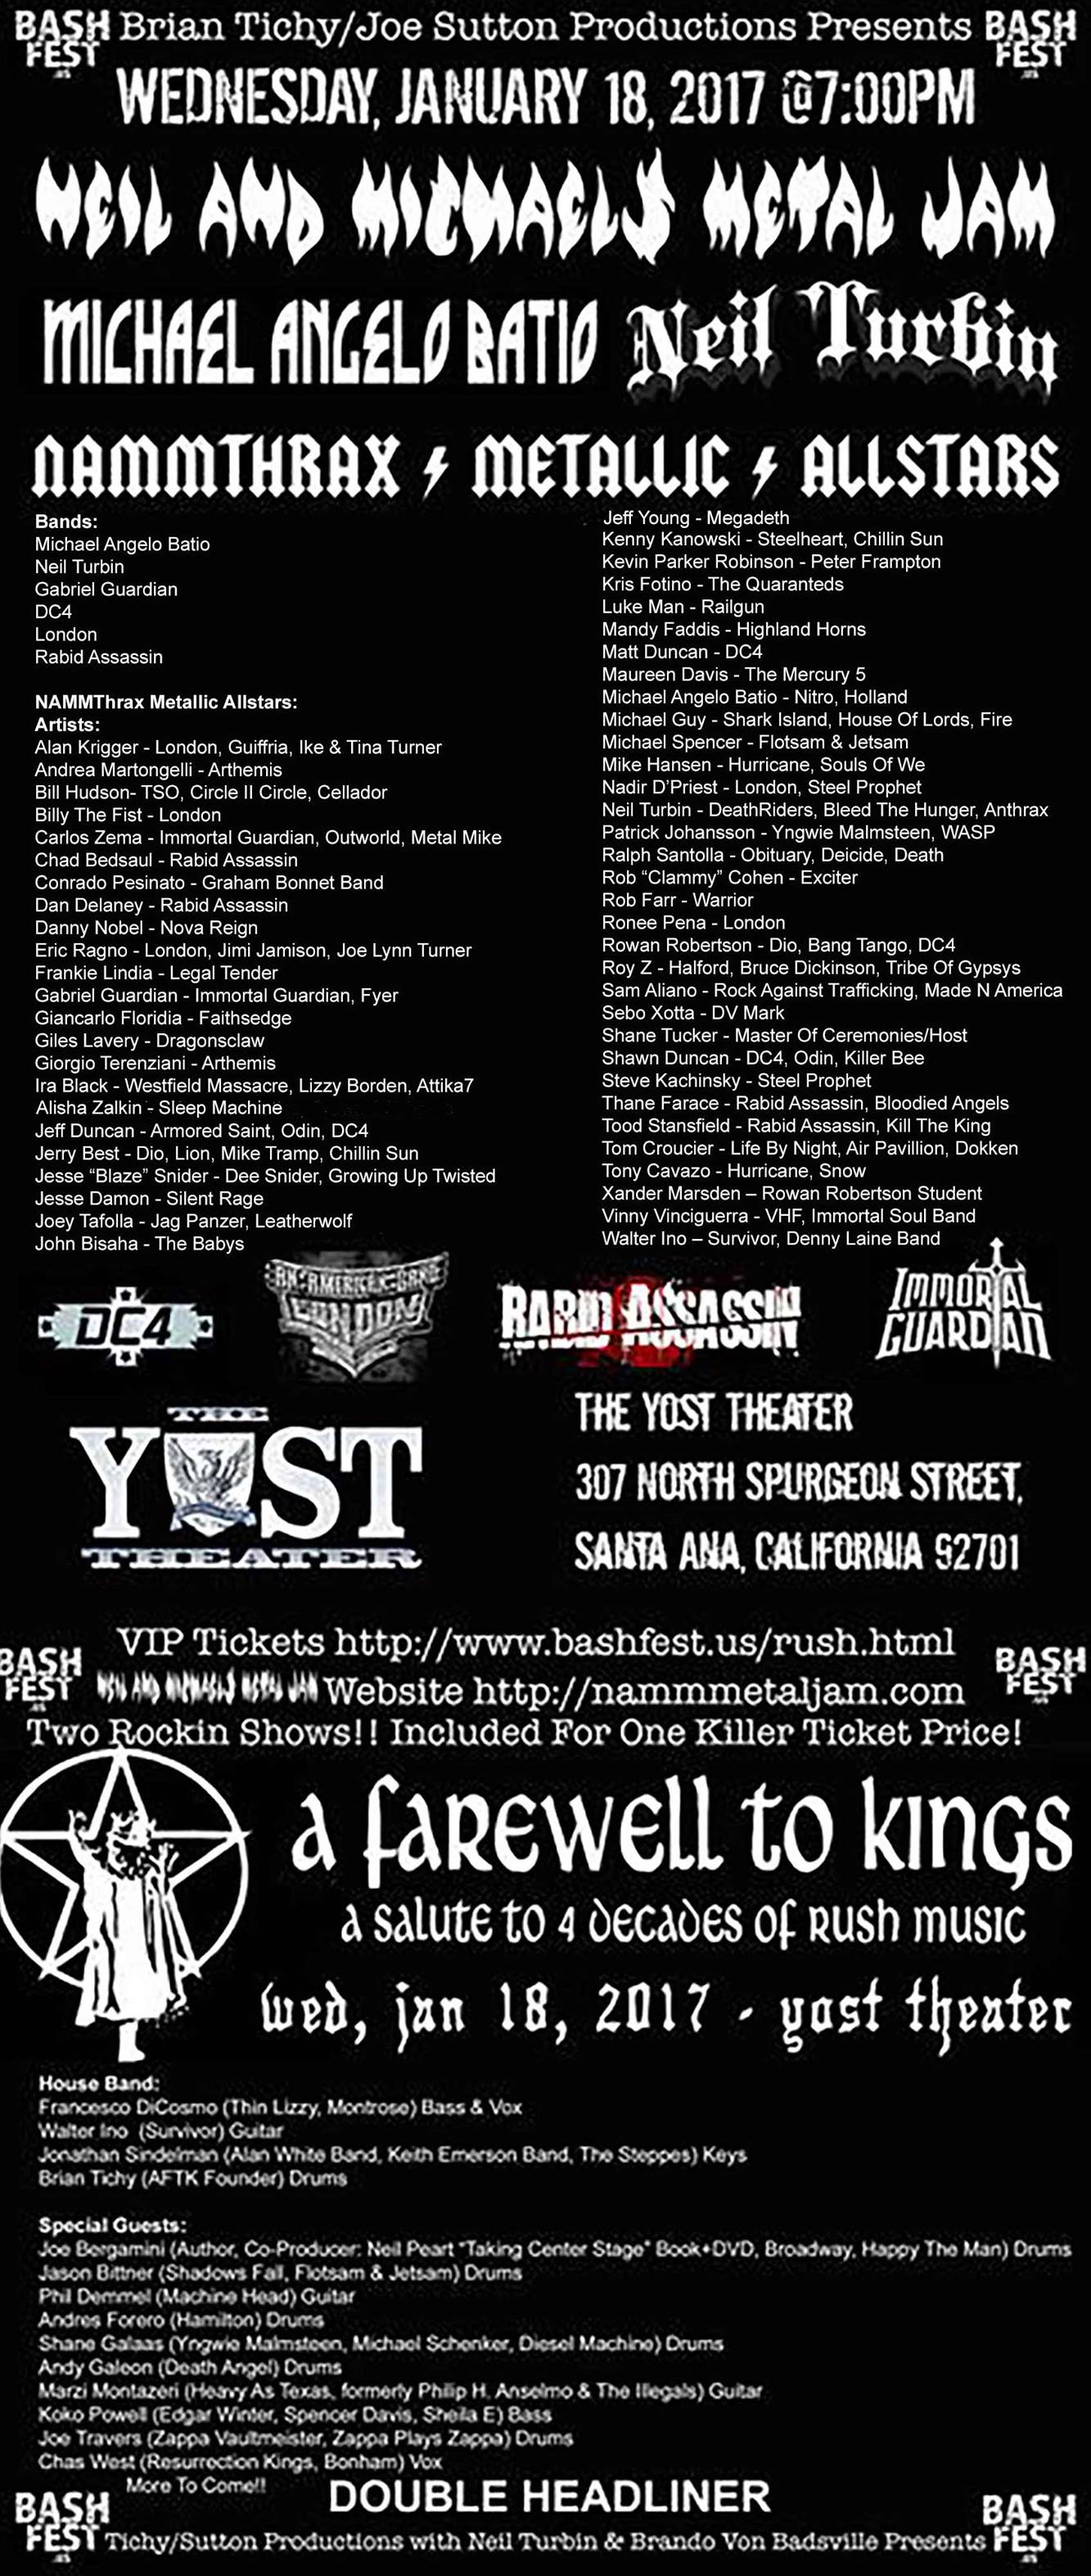 Neil And Michaels Metal Jam The Yost Theater 1/18/2017